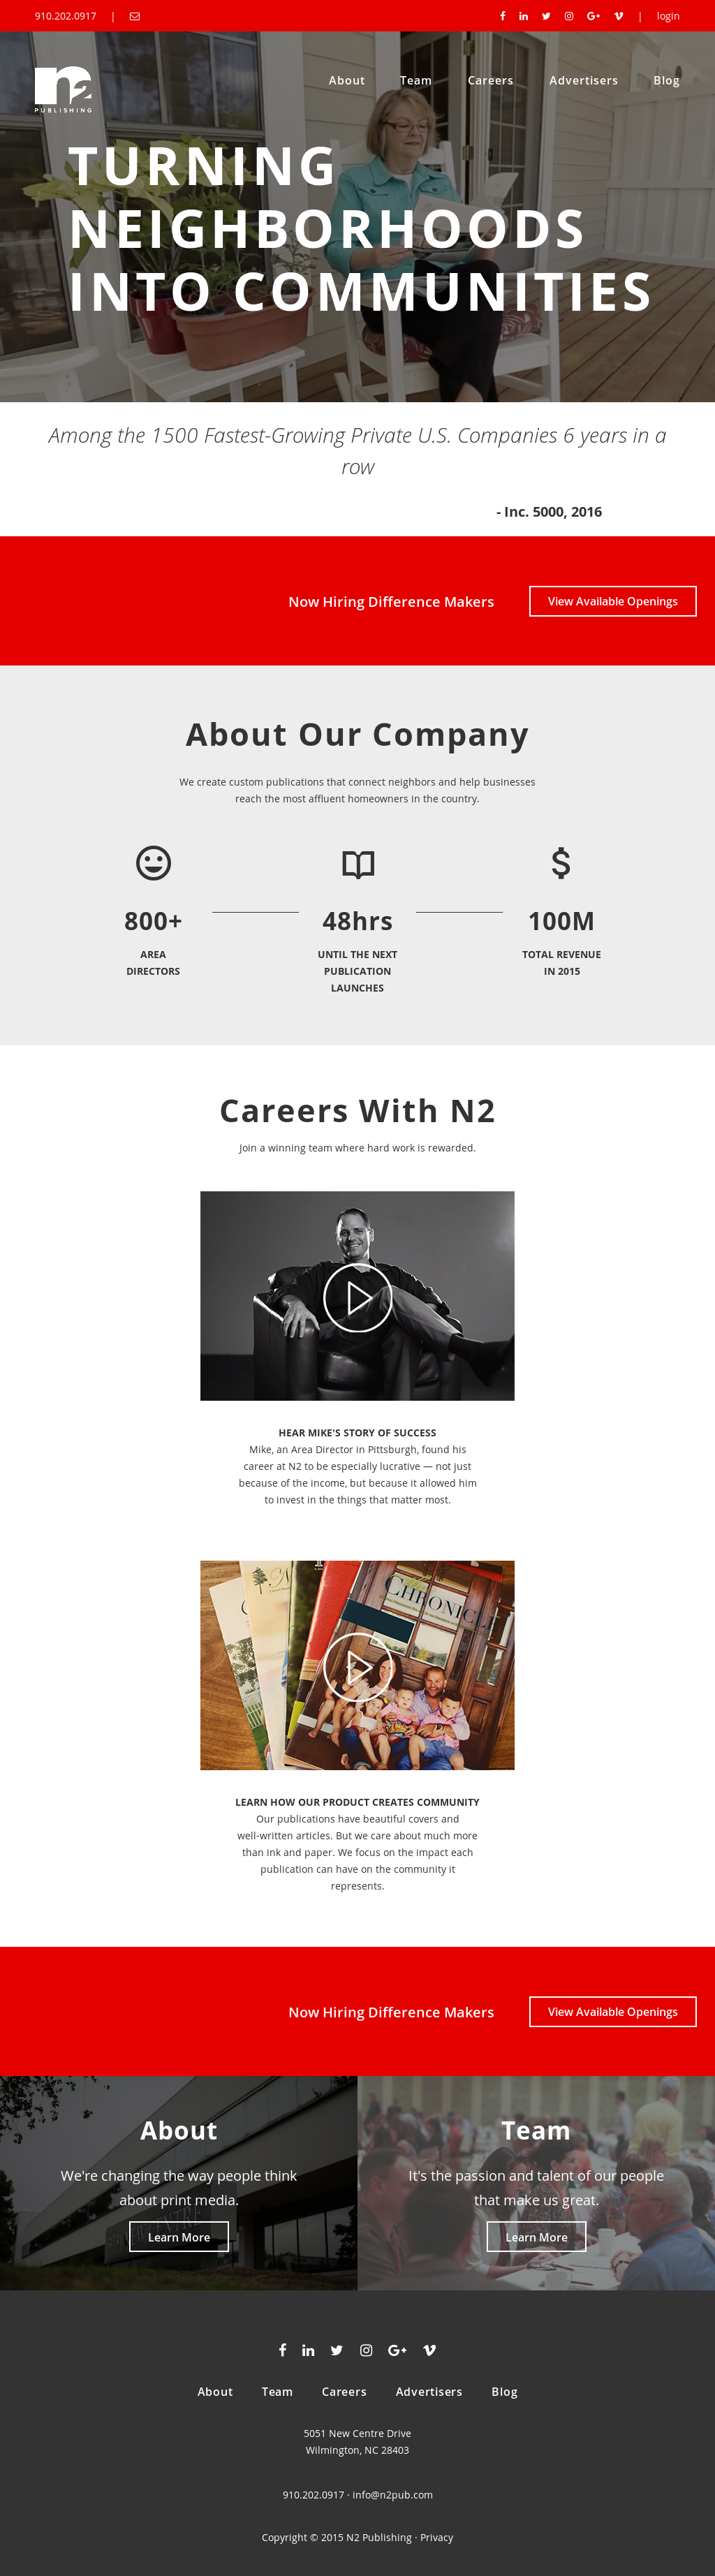 N2 Publishing Competitors, Revenue and Employees - Owler ...